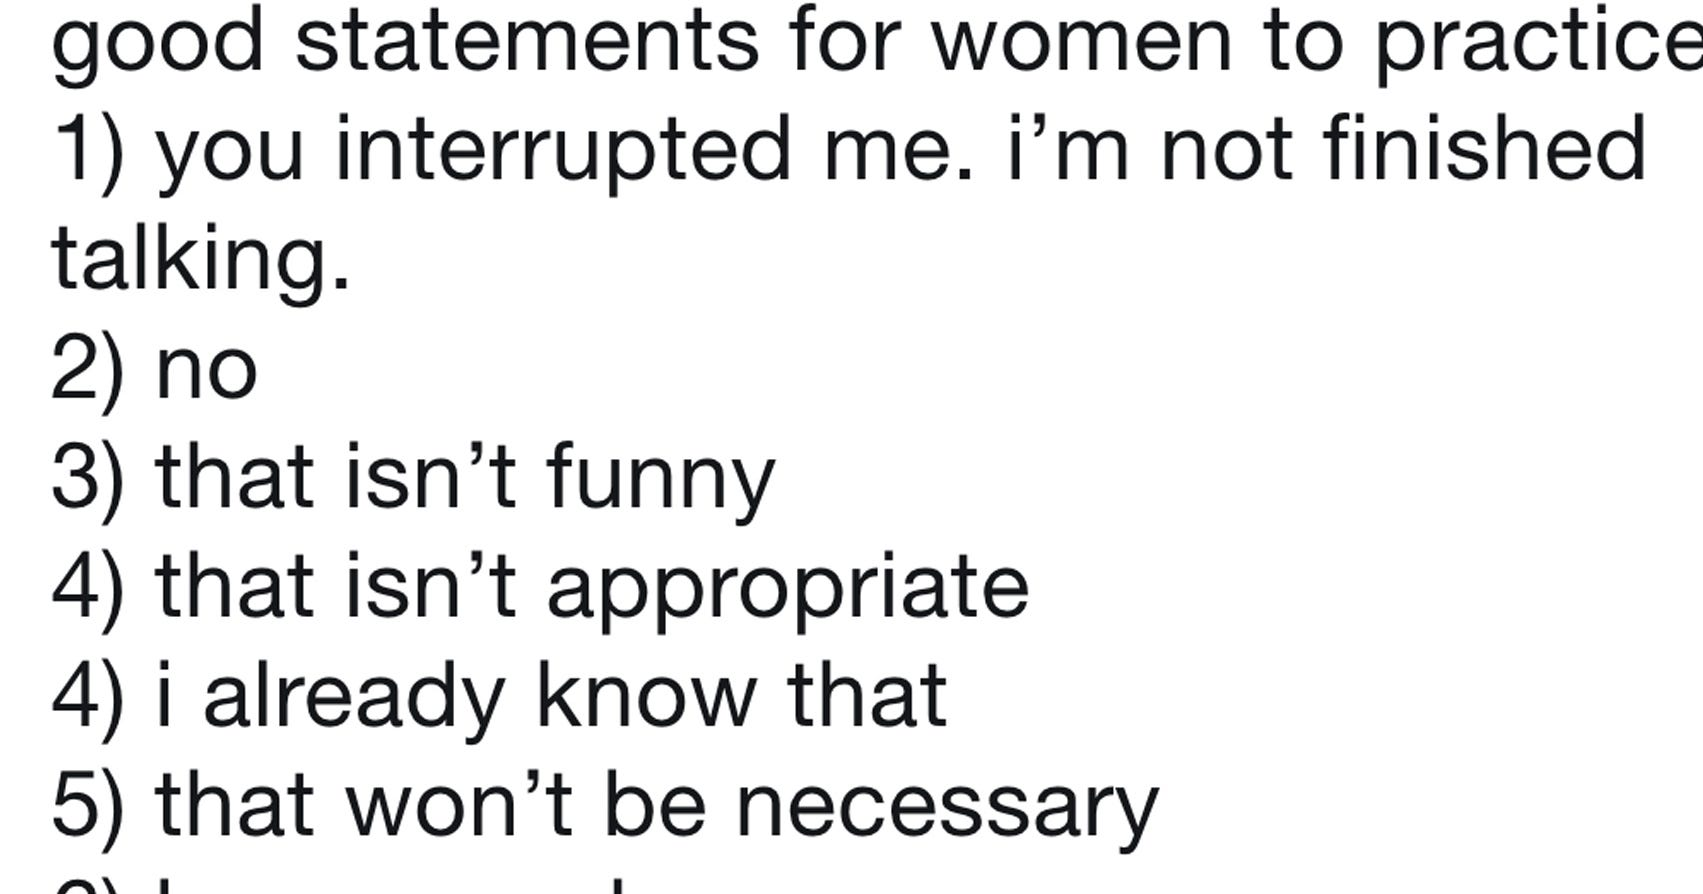 A List Of Statements That Women Should Practice Telling Men Has Gone Viral